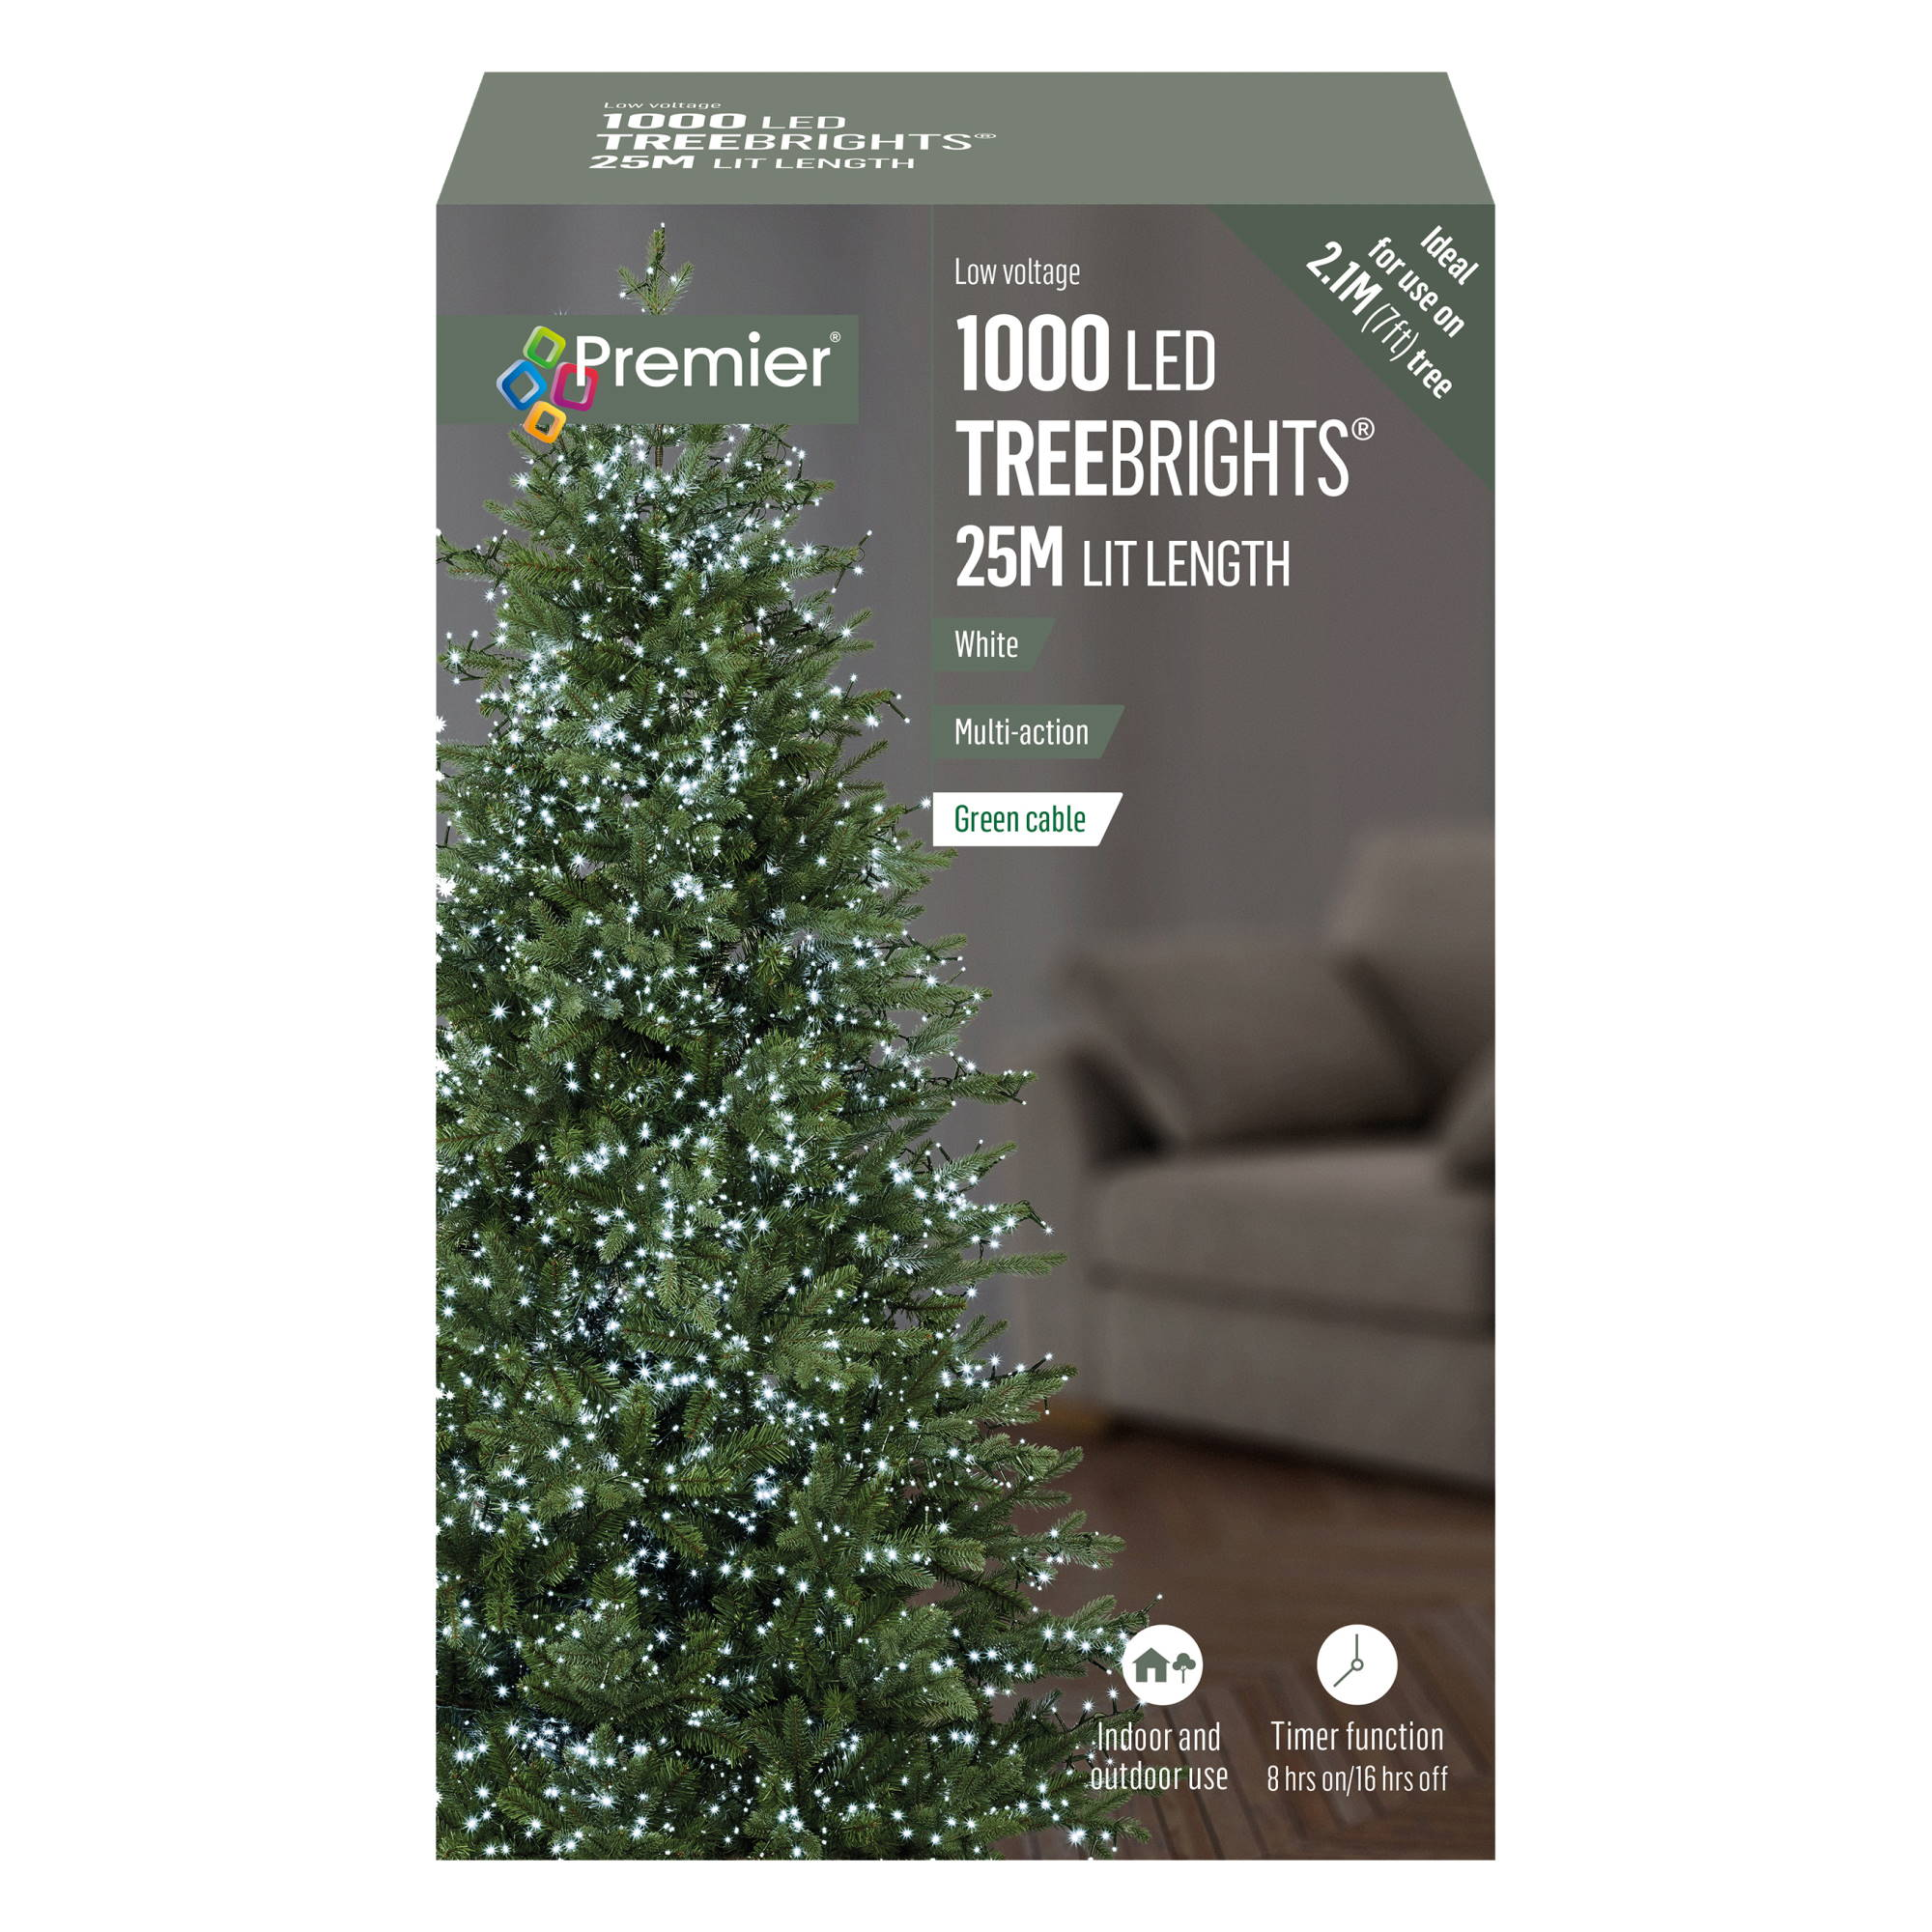 Premier 1000 LED Multi Action Treebrights With Timer White SKU 38642647 5053844154908